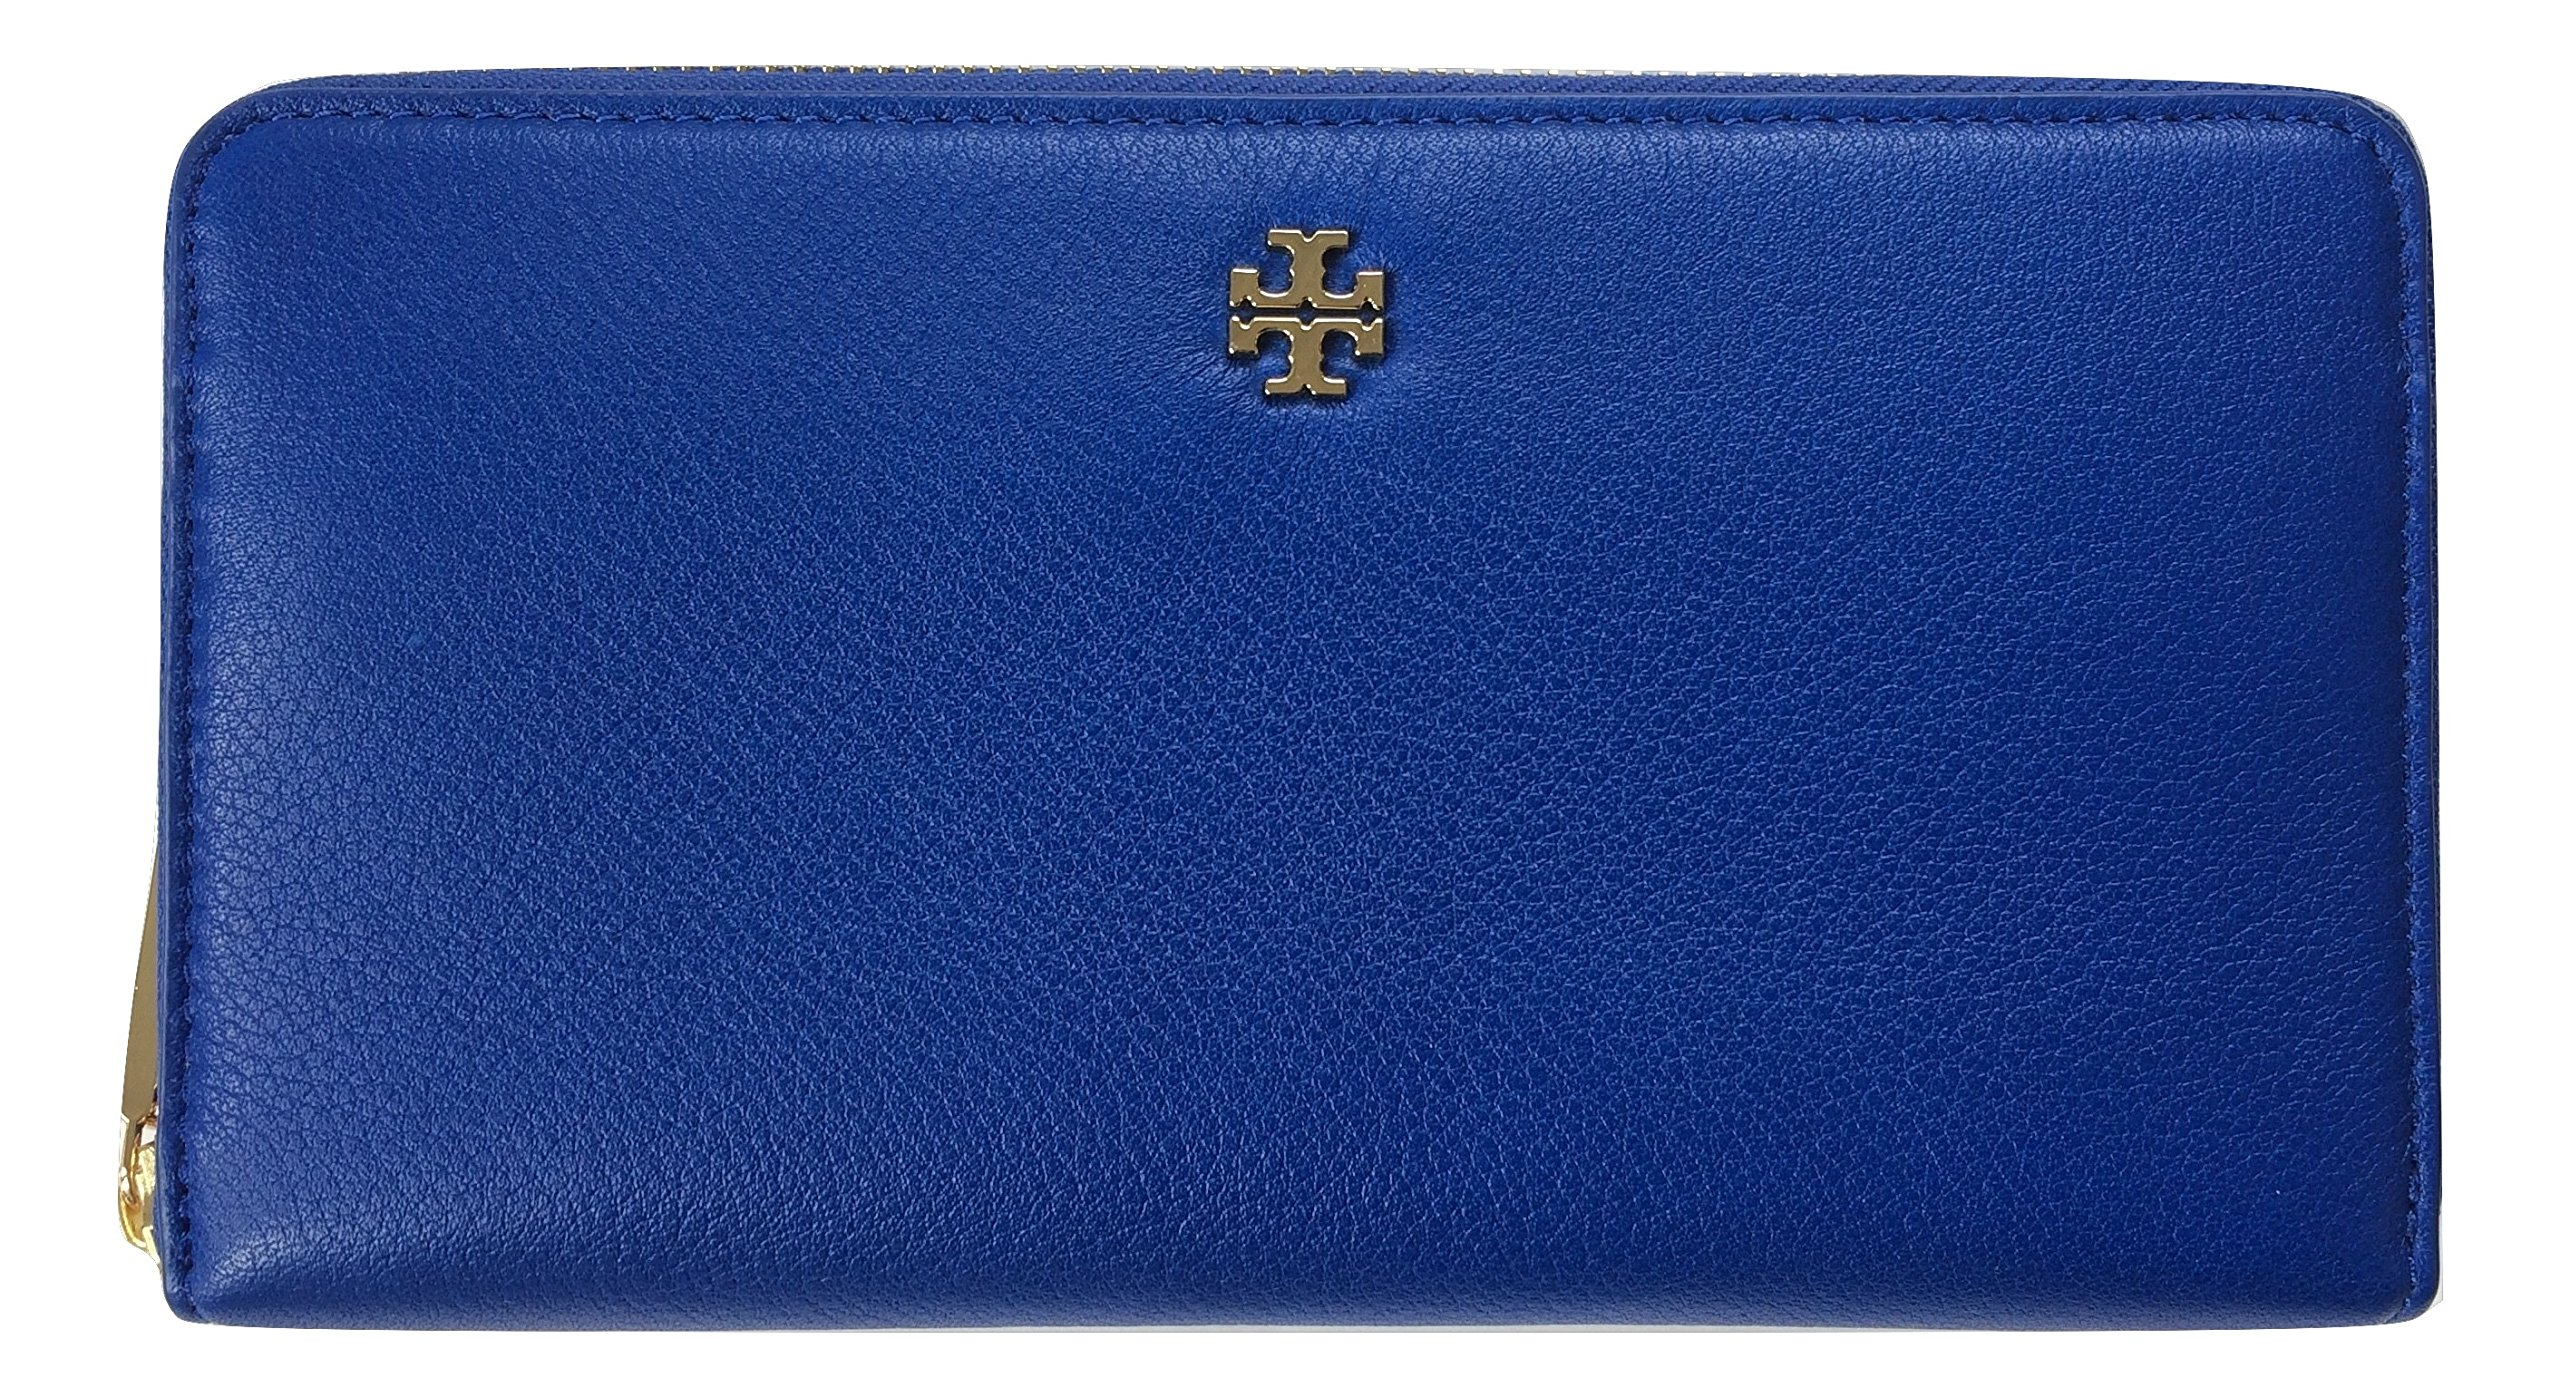 Tory Burch Mercer Zip Soft Pebbled Leather Continental Wallet Style No. 31412 (Jelly Blue)